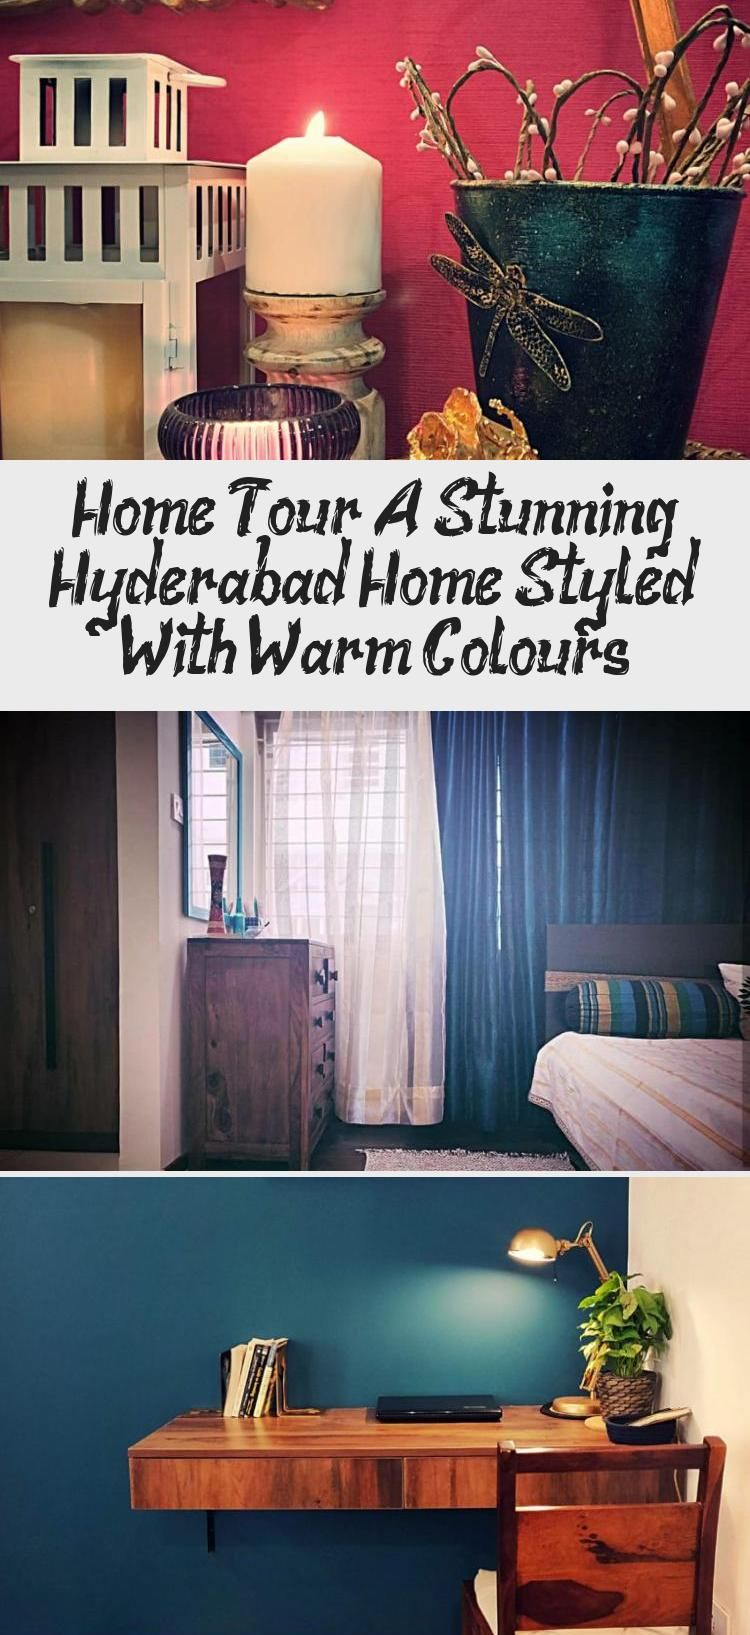 Home Tour A Stunning Hyderabad Home Styled With Warm